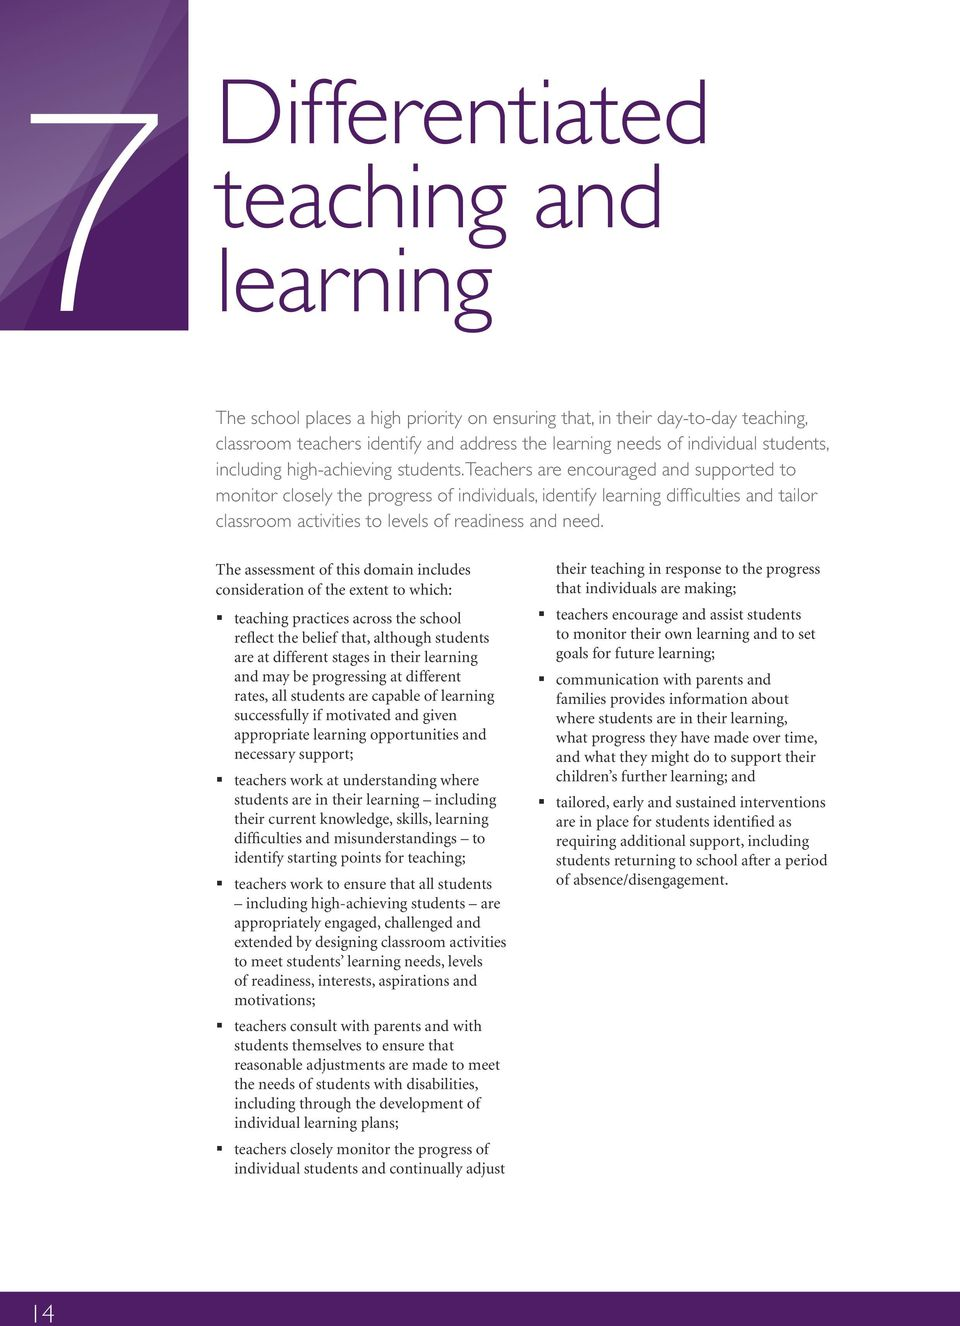 Teachers are encouraged and supported to monitor closely the progress of individuals, identify learning difficulties and tailor classroom activities to levels of readiness and need.